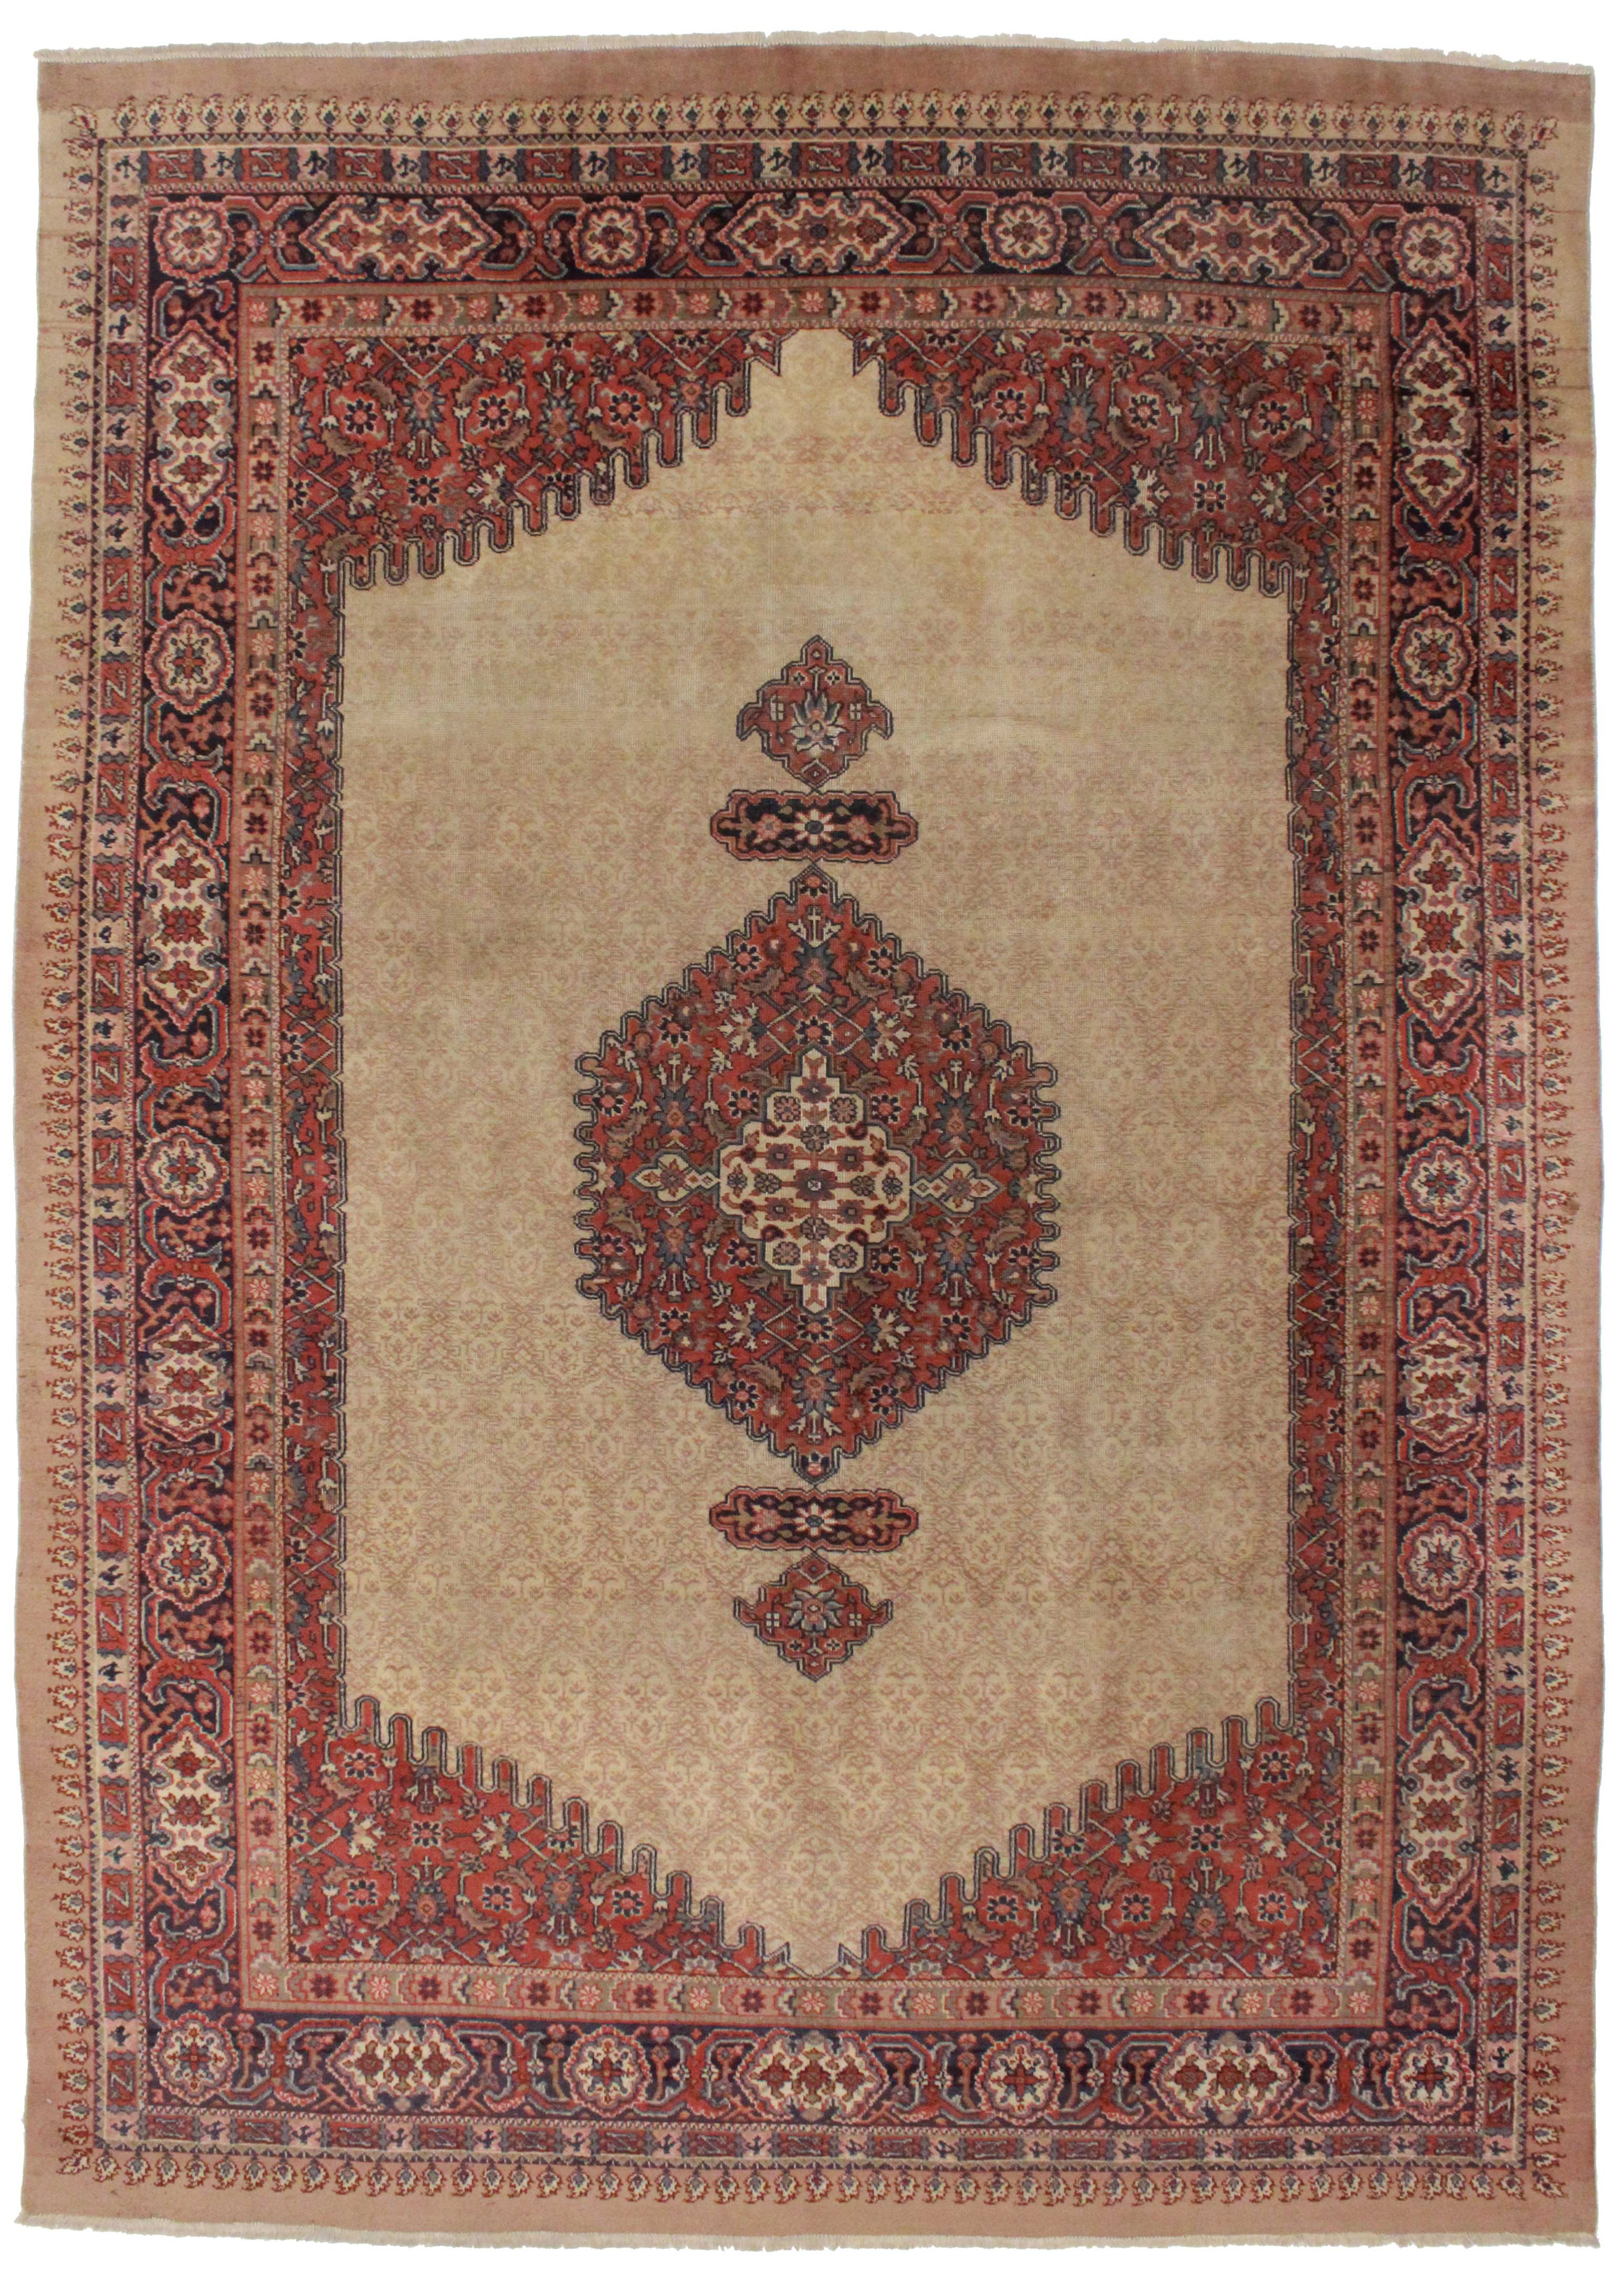 Antique Persian Serab 9 X 12 Rug Exclusive Oriental Rugs